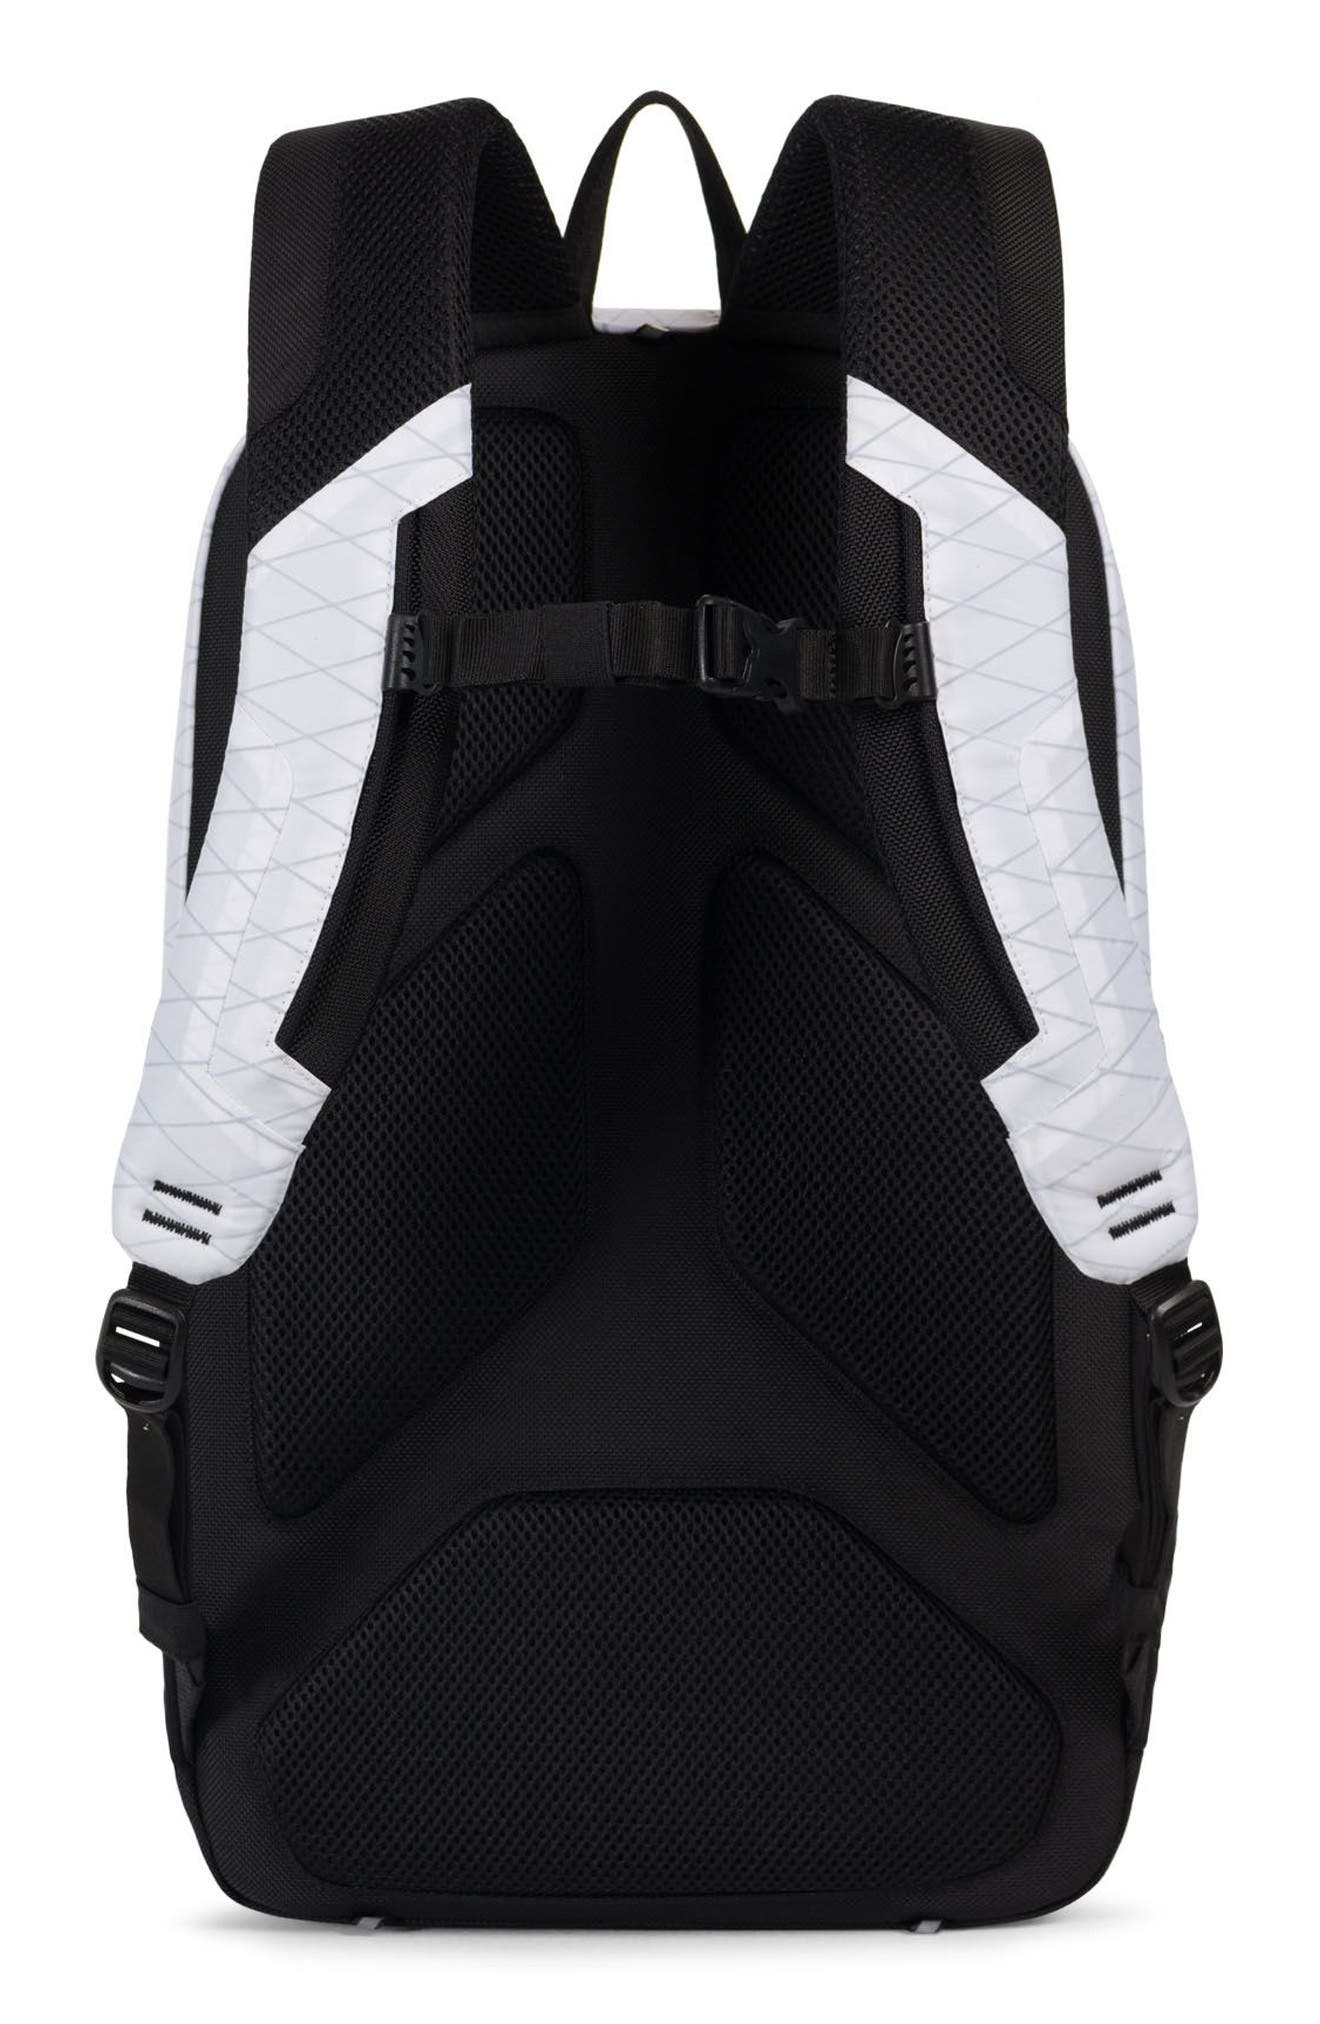 Trail Sailcloth Mammoth Large Backpack,                             Alternate thumbnail 2, color,                             White/ Black